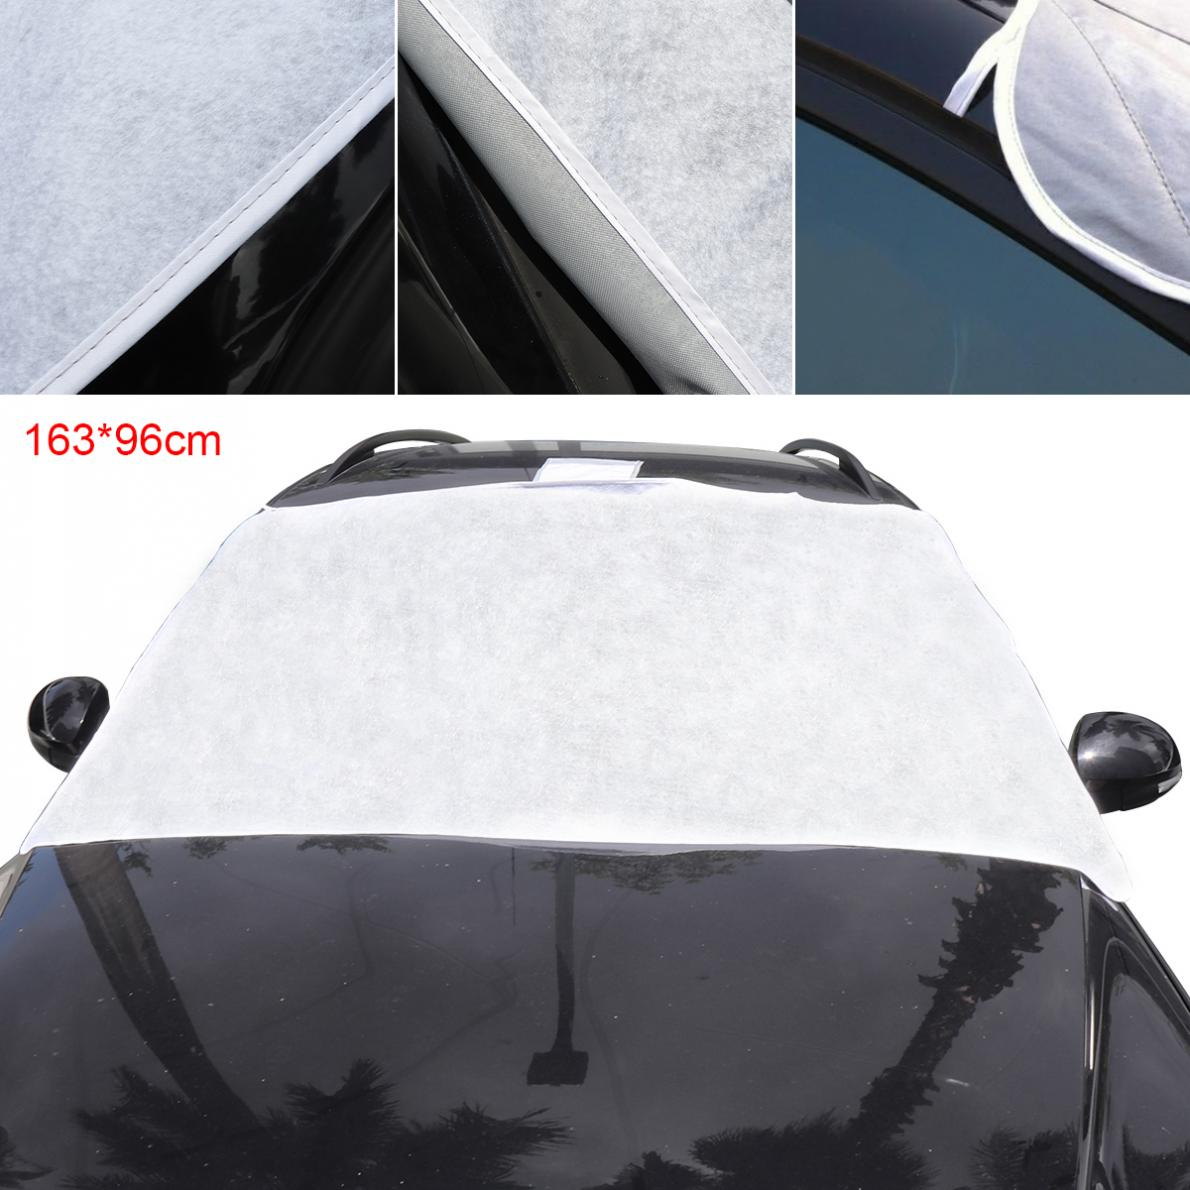 Universal Thick Front Windshield Peva Cotton Ice/Snow/Frost Protector Car Clothing Cover with Two Bandage + Five Magnets|Car Covers| |  - title=